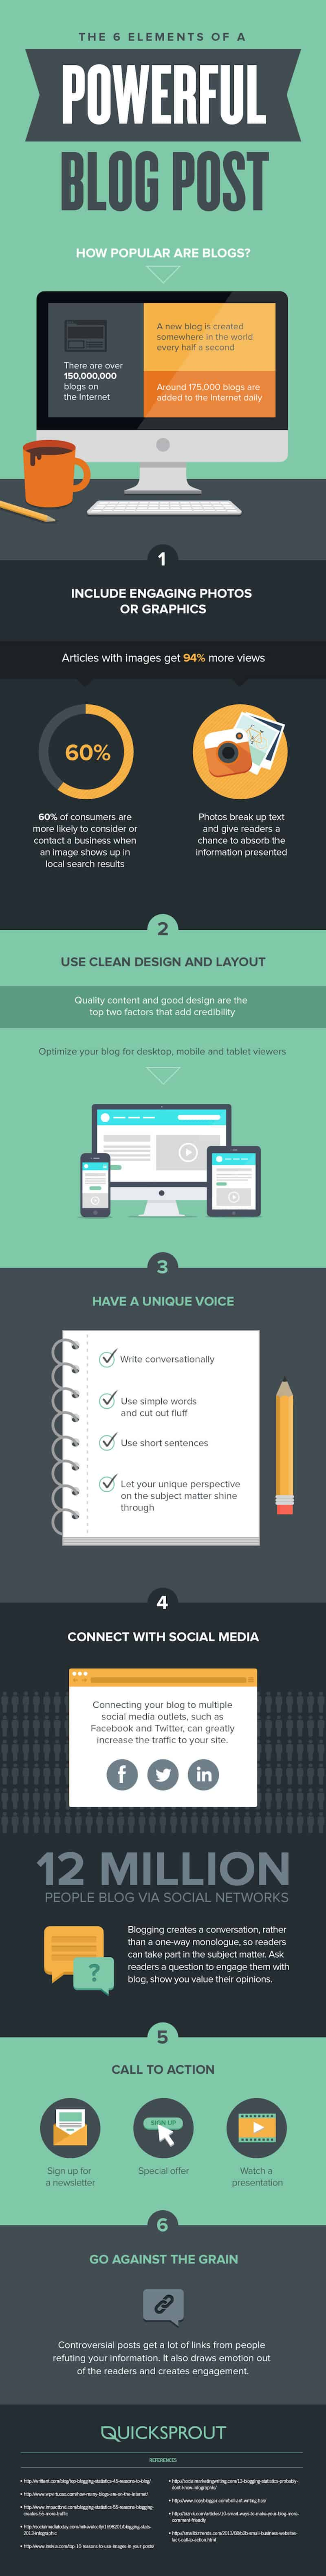 Make your blog awesome